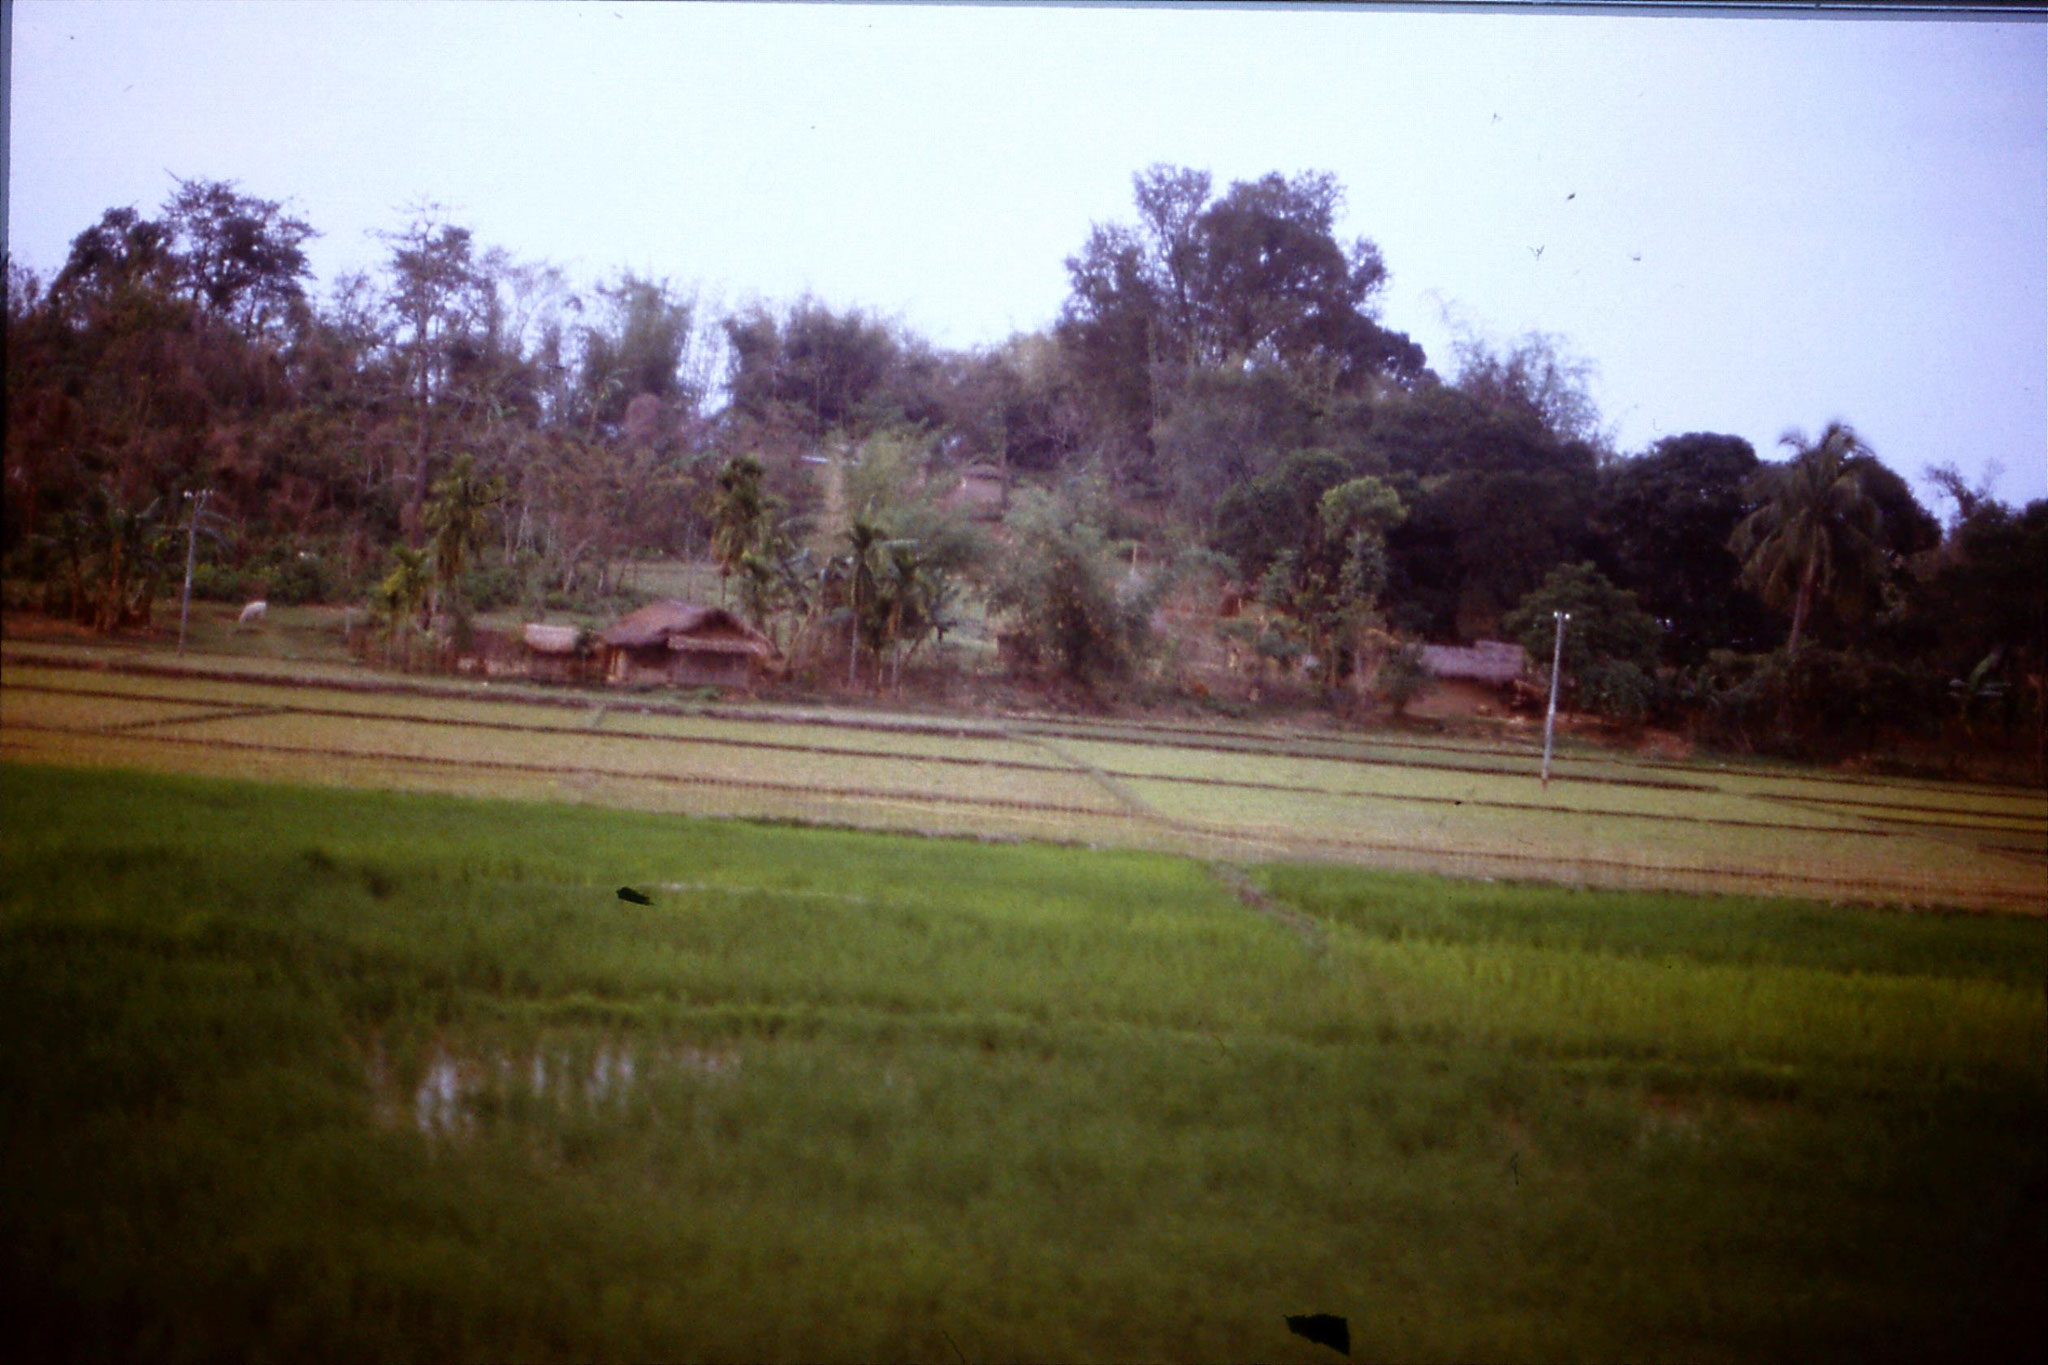 109/27: 11/4 After Gauhati - cottages and ricefields